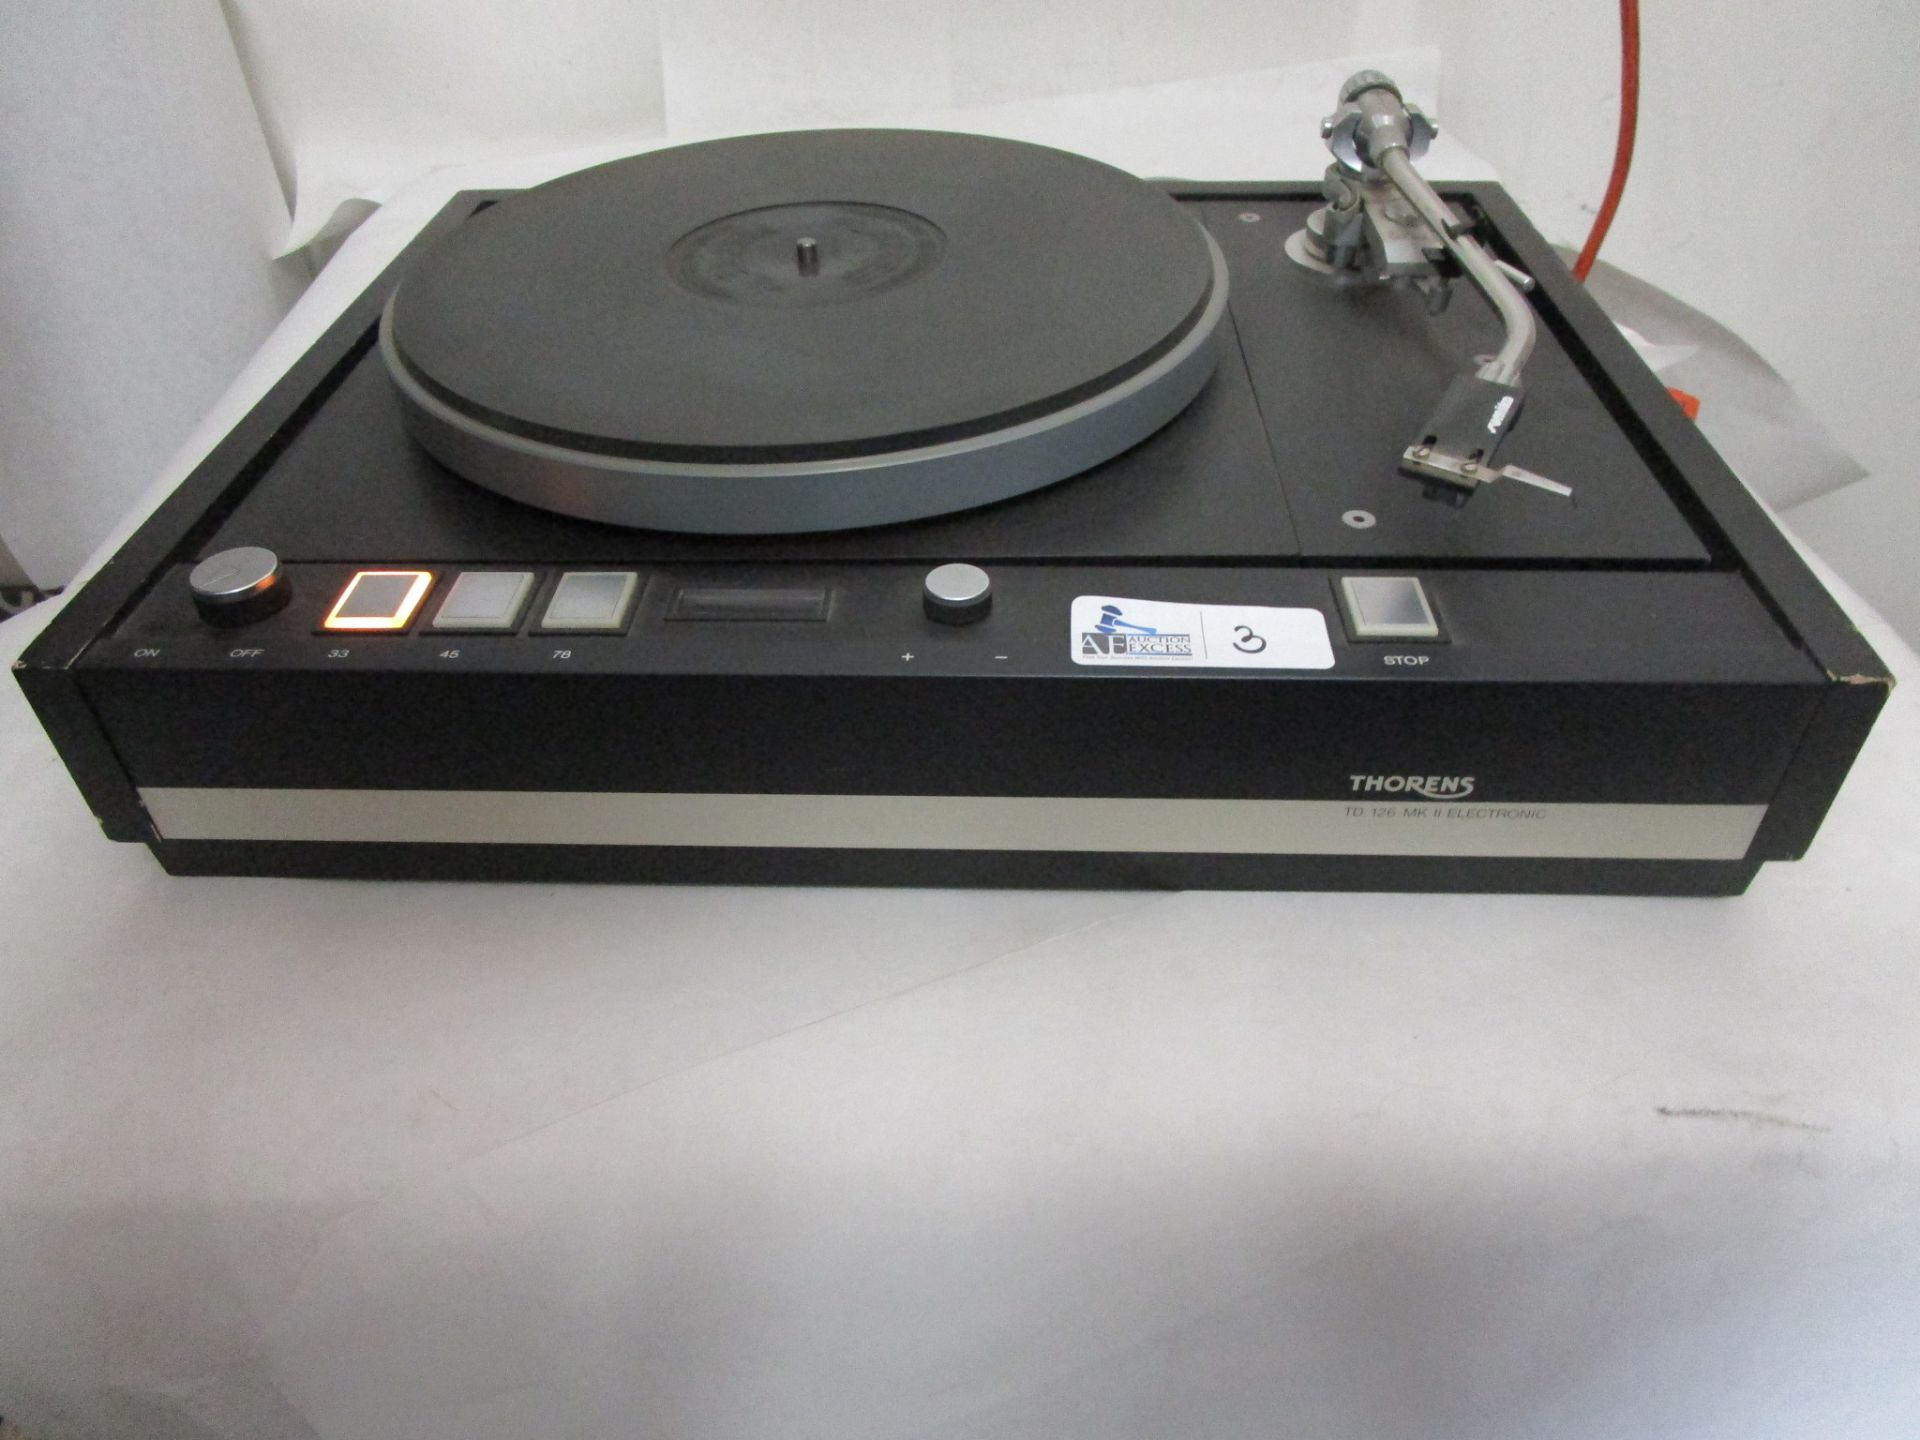 Lot 3 - THORENS TD126-MK II TURNTABLE